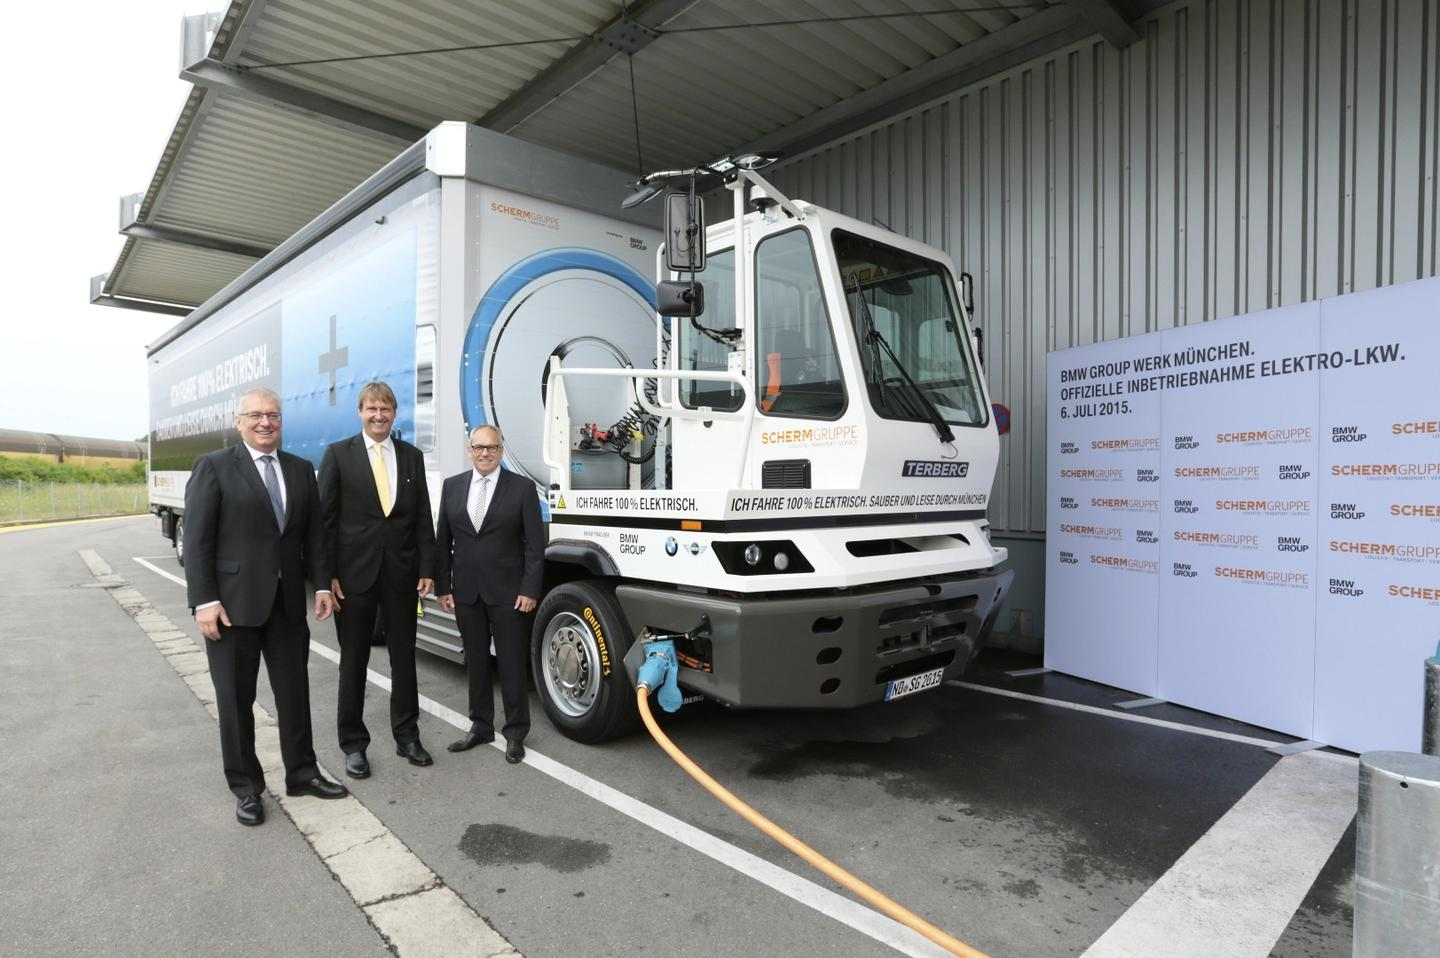 The truck will complete 8 daily runs between BMW's plant and manufacturer SCHERM's plant in Munich